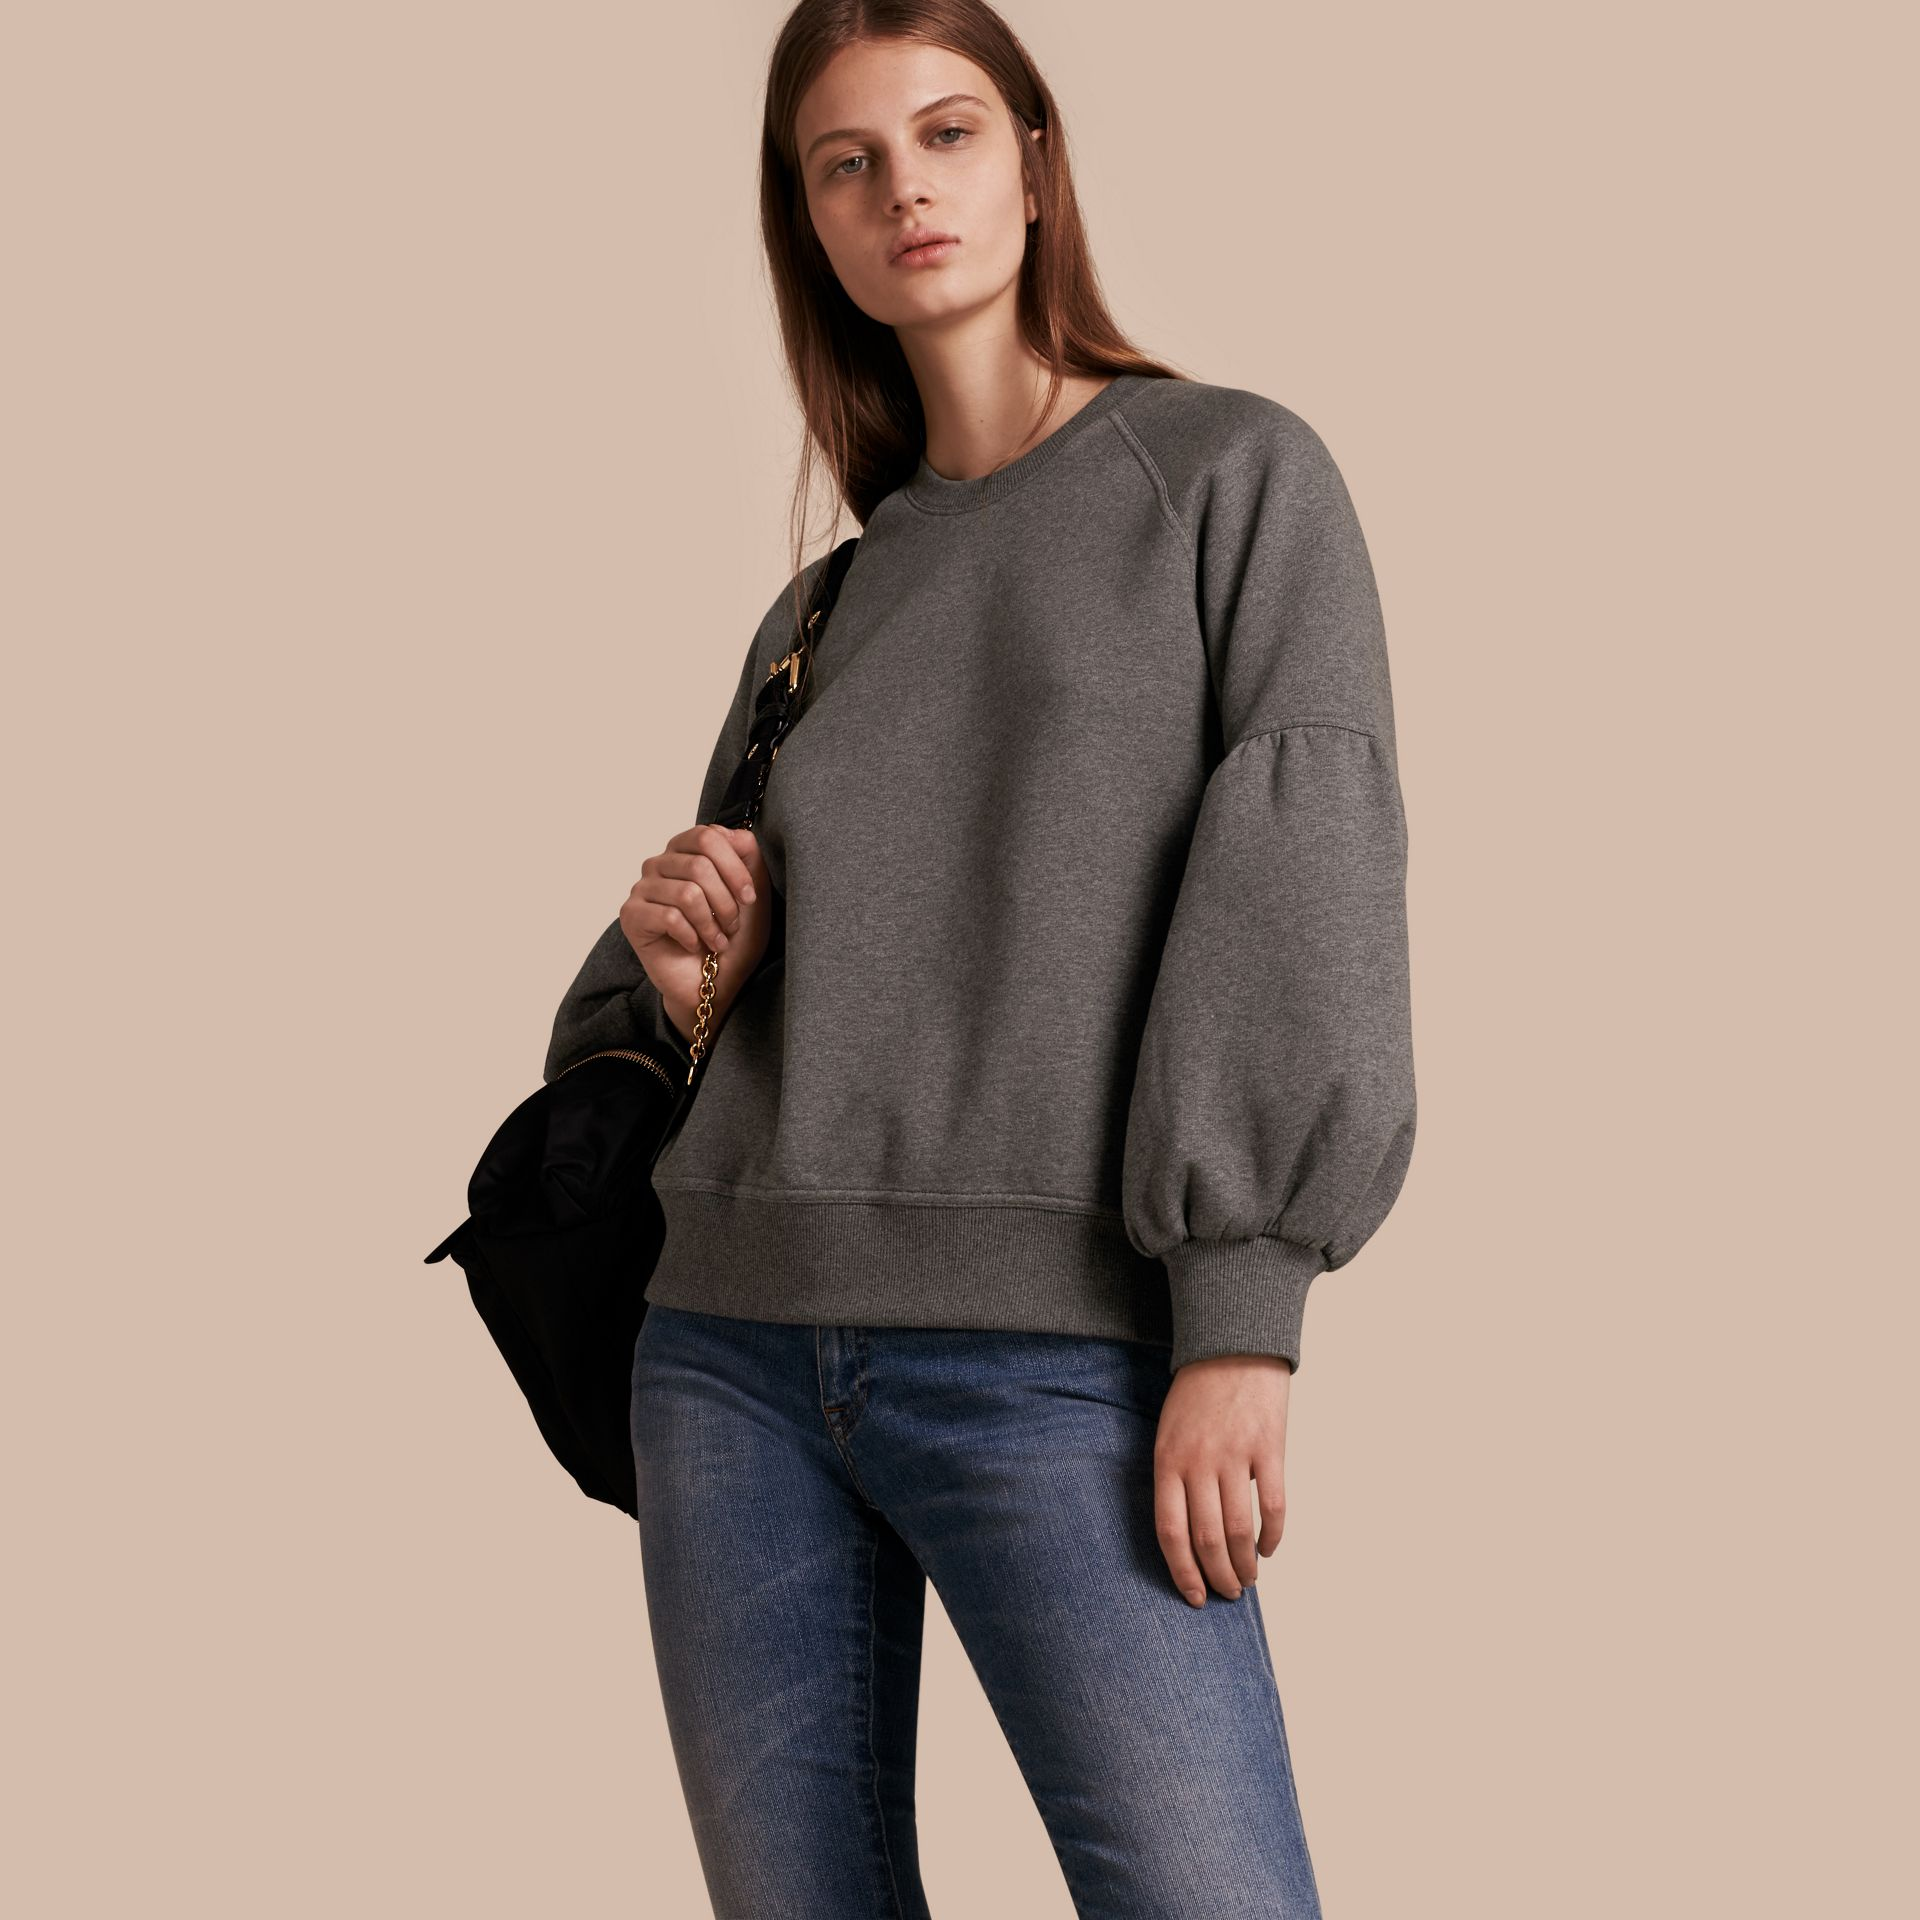 Mid grey melange Brushed-back Jersey Sweatshirt with Bell Sleeves Mid Grey Melange - gallery image 1